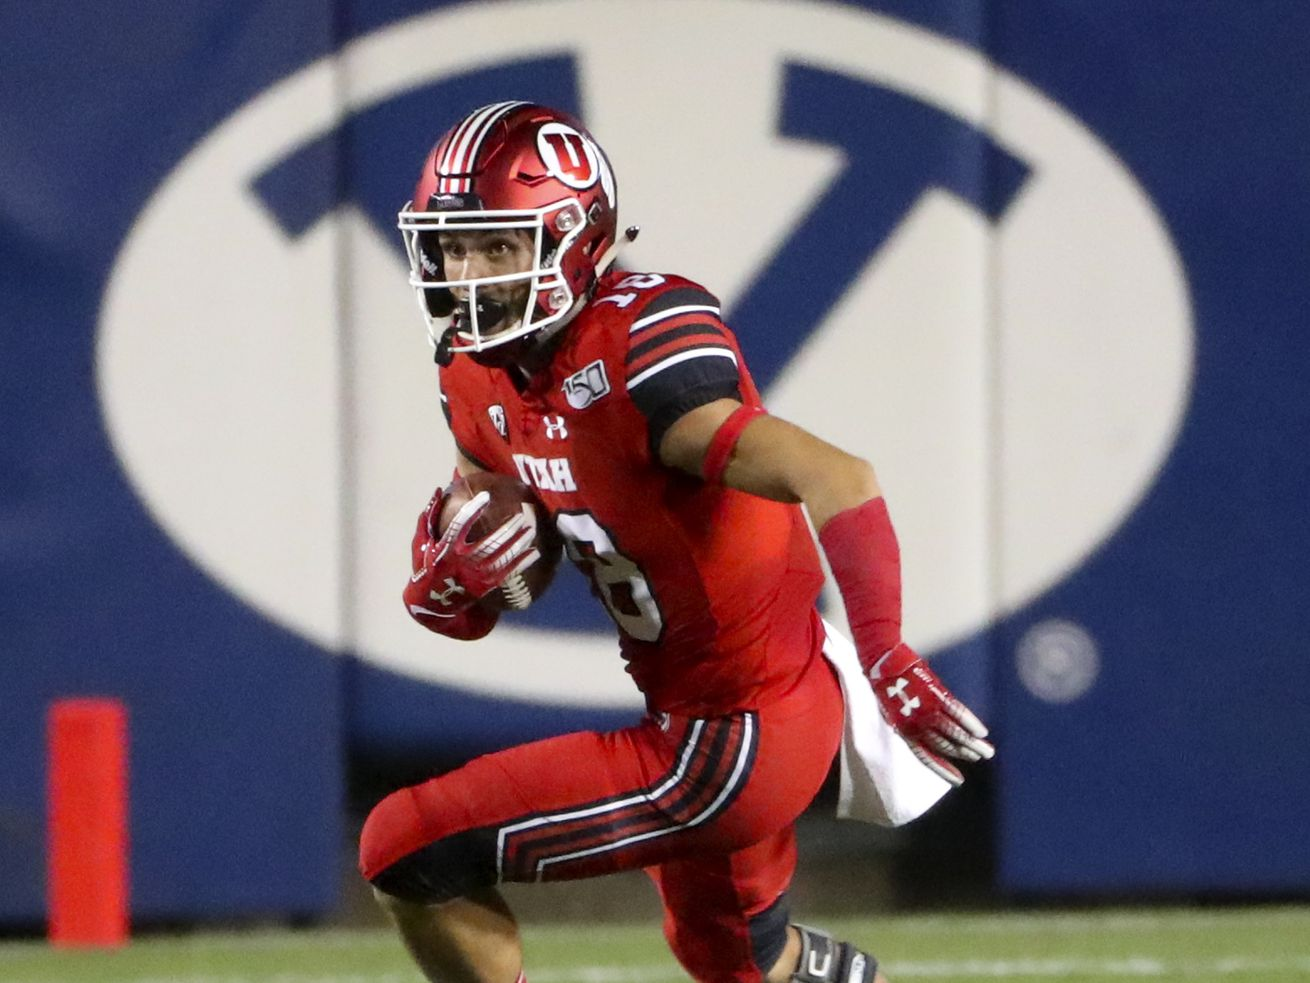 Utah's Britain Covey (18) heads upfield after fielding a punt during the Utah-BYU football game at LaVell Edwards Stadium in Provo on Thursday, Aug. 29, 2019.